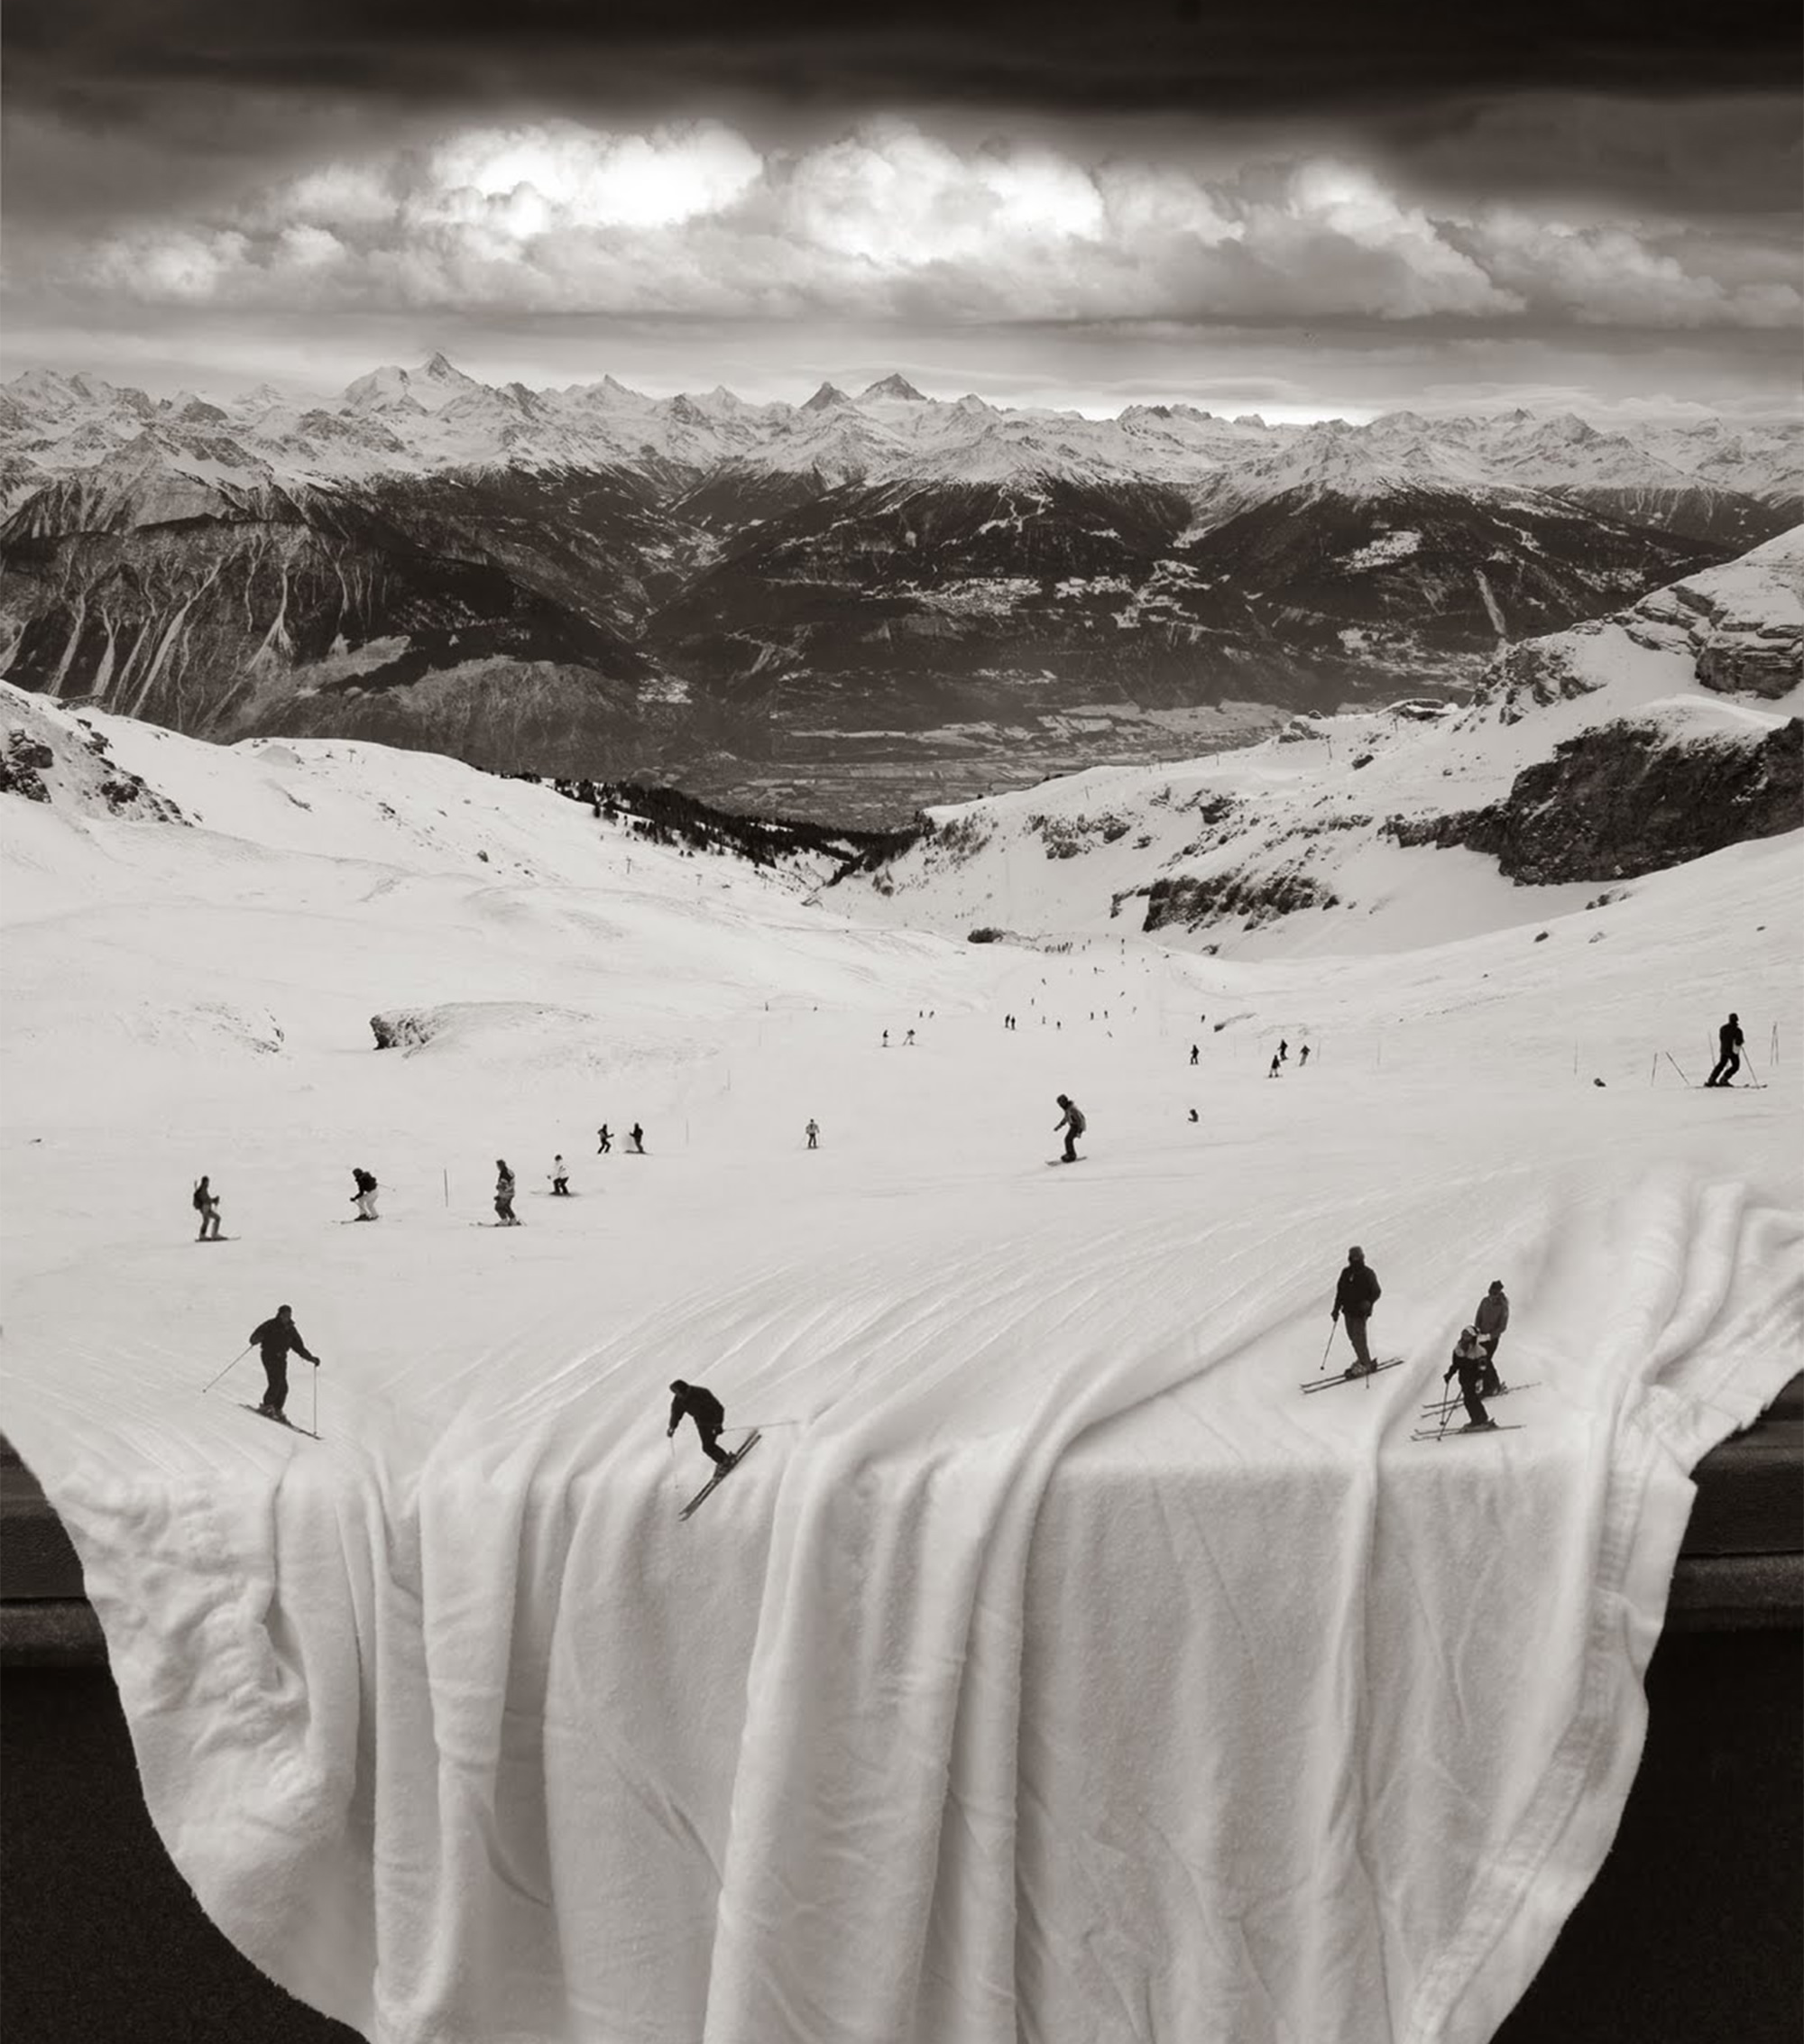 Thomas Barbey: Living in a Surreal World